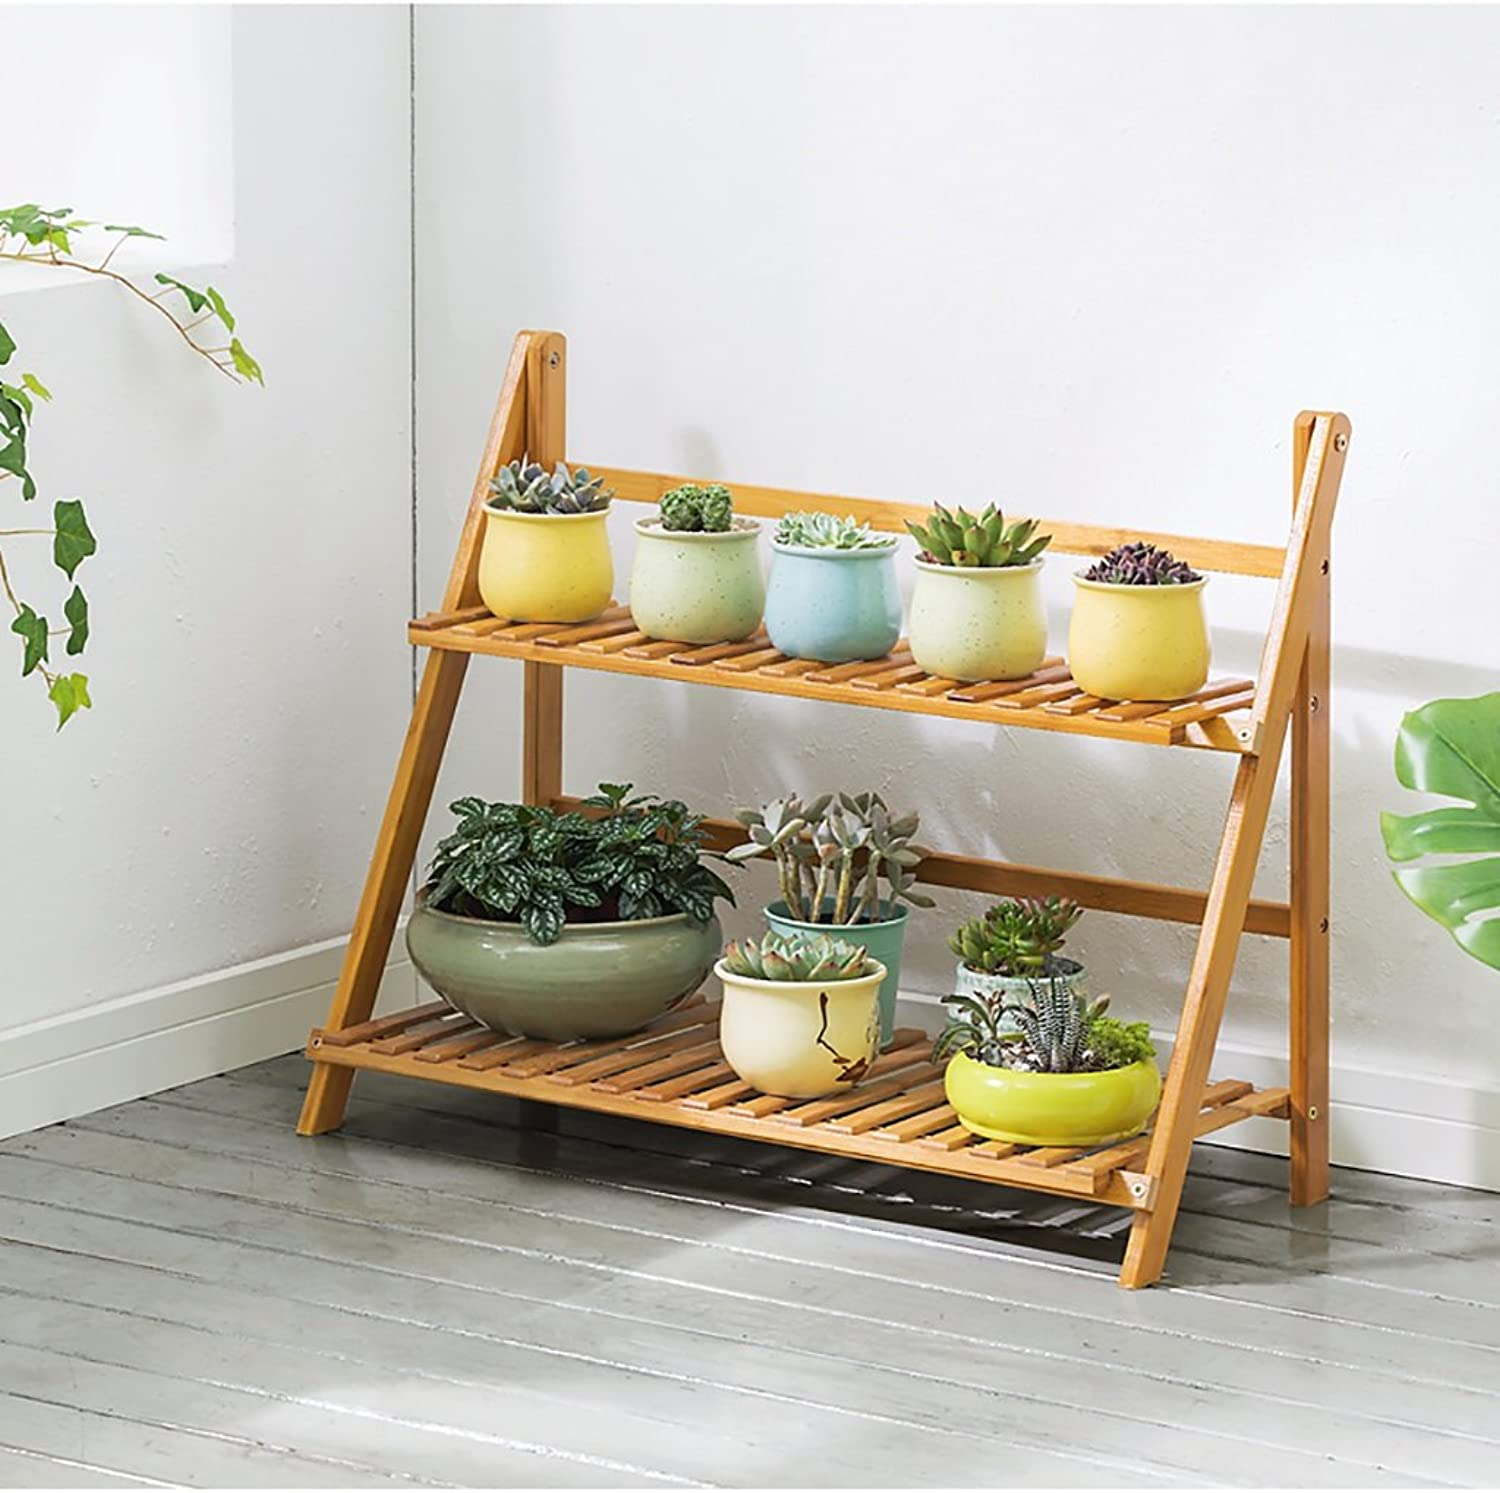 Standing Flower Stand Flower Stand Solid Wood Multi-Layer Landing Flower Stand Balcony Living Room Flower Pot Rack Shelf Decorative Frame (Size   B)